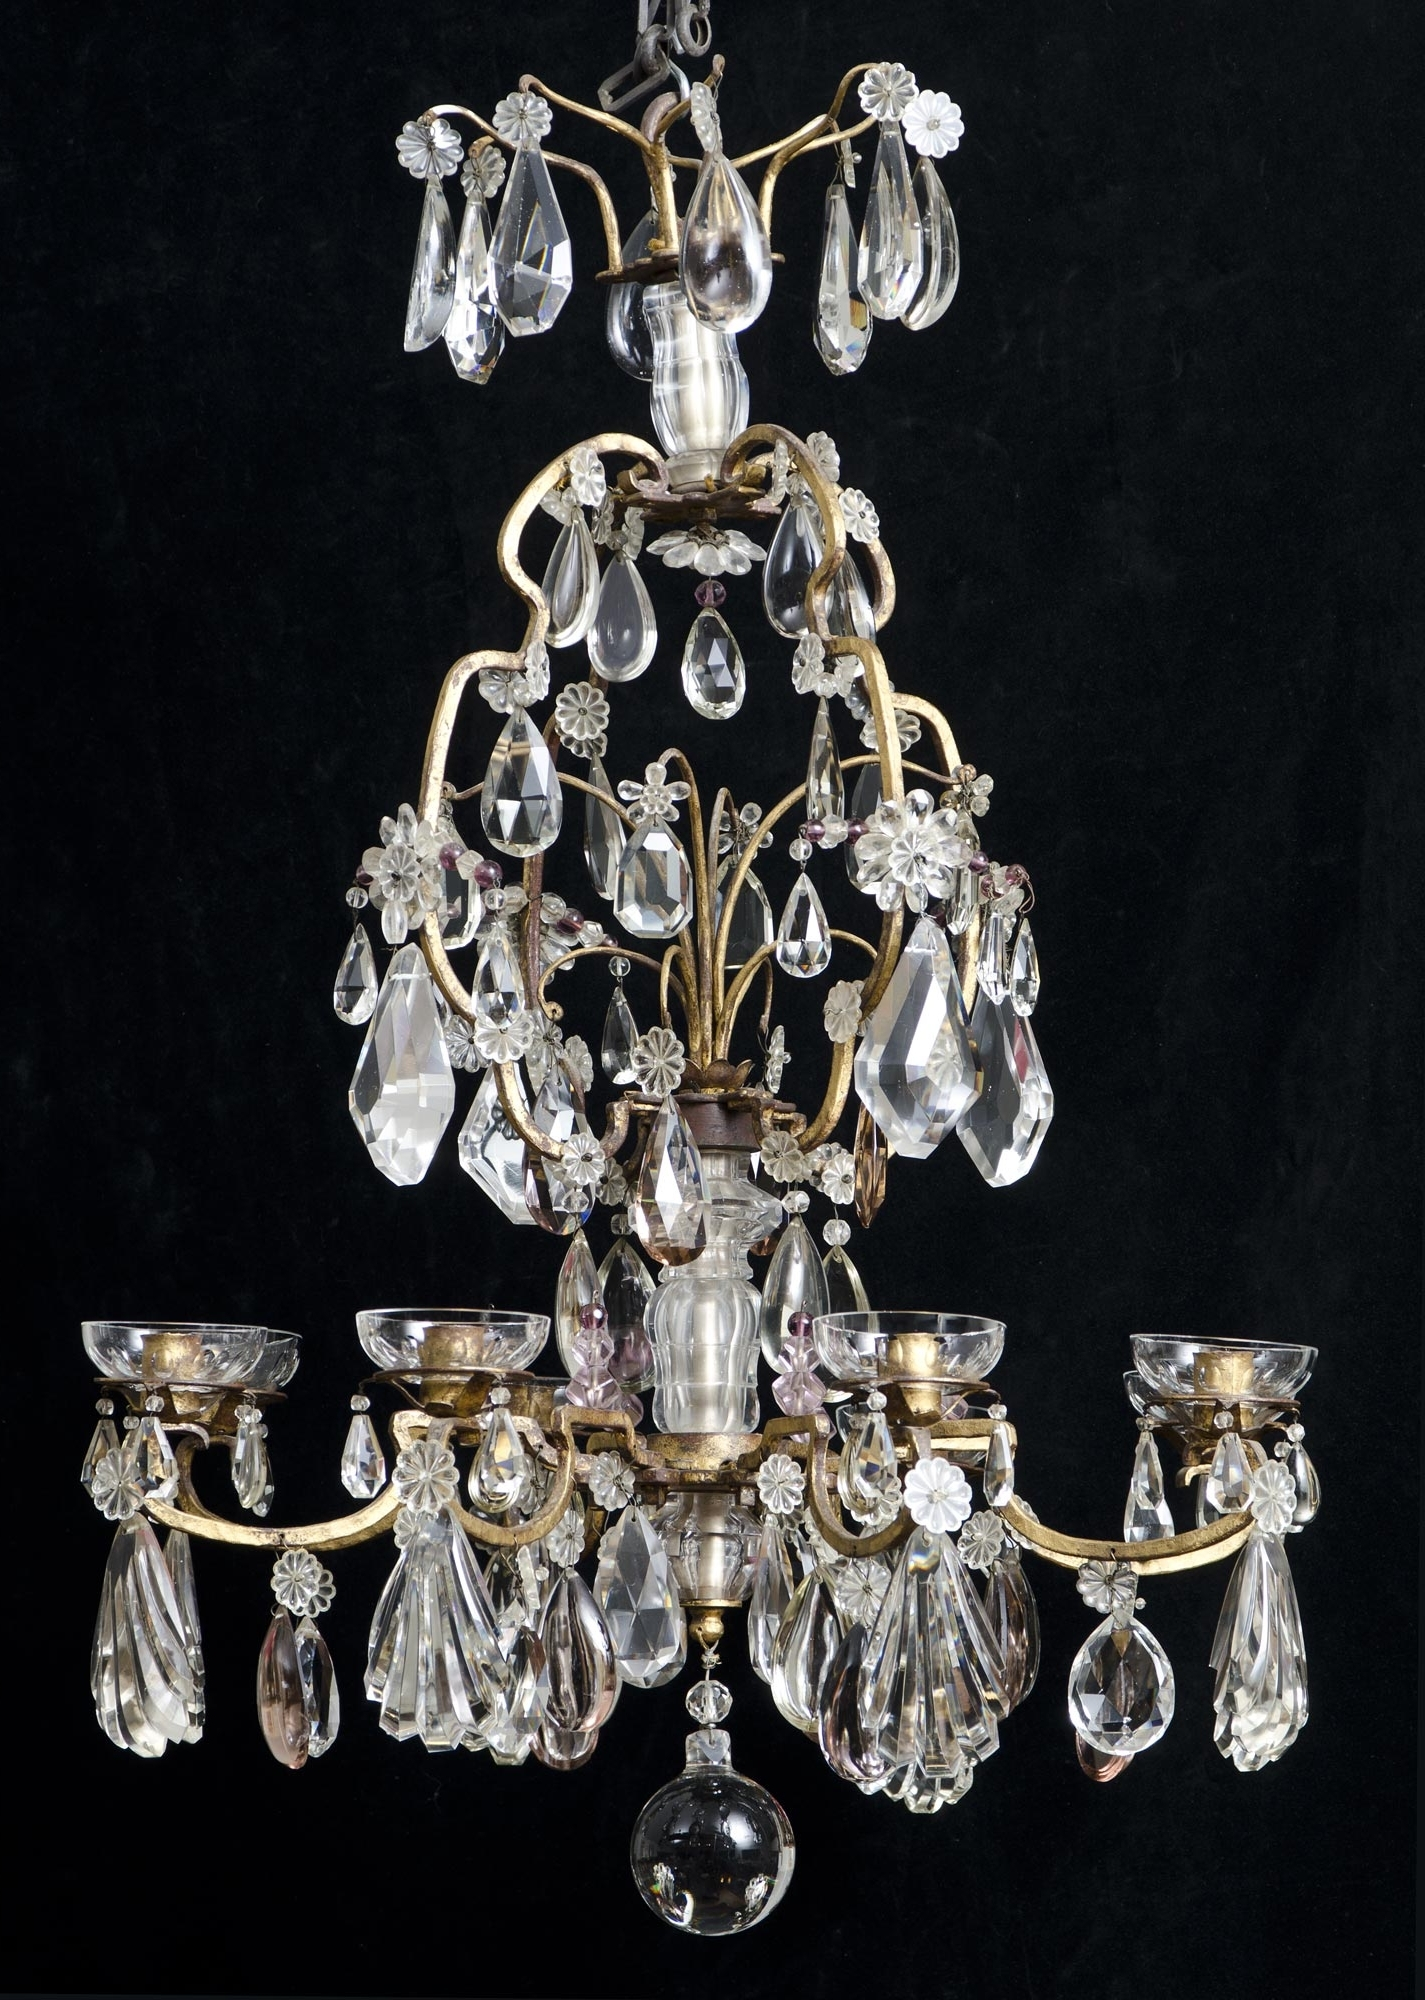 French Crystal Chandeliers With Regard To Most Current Eight Light Antique French Crystal Chandelier (View 12 of 20)